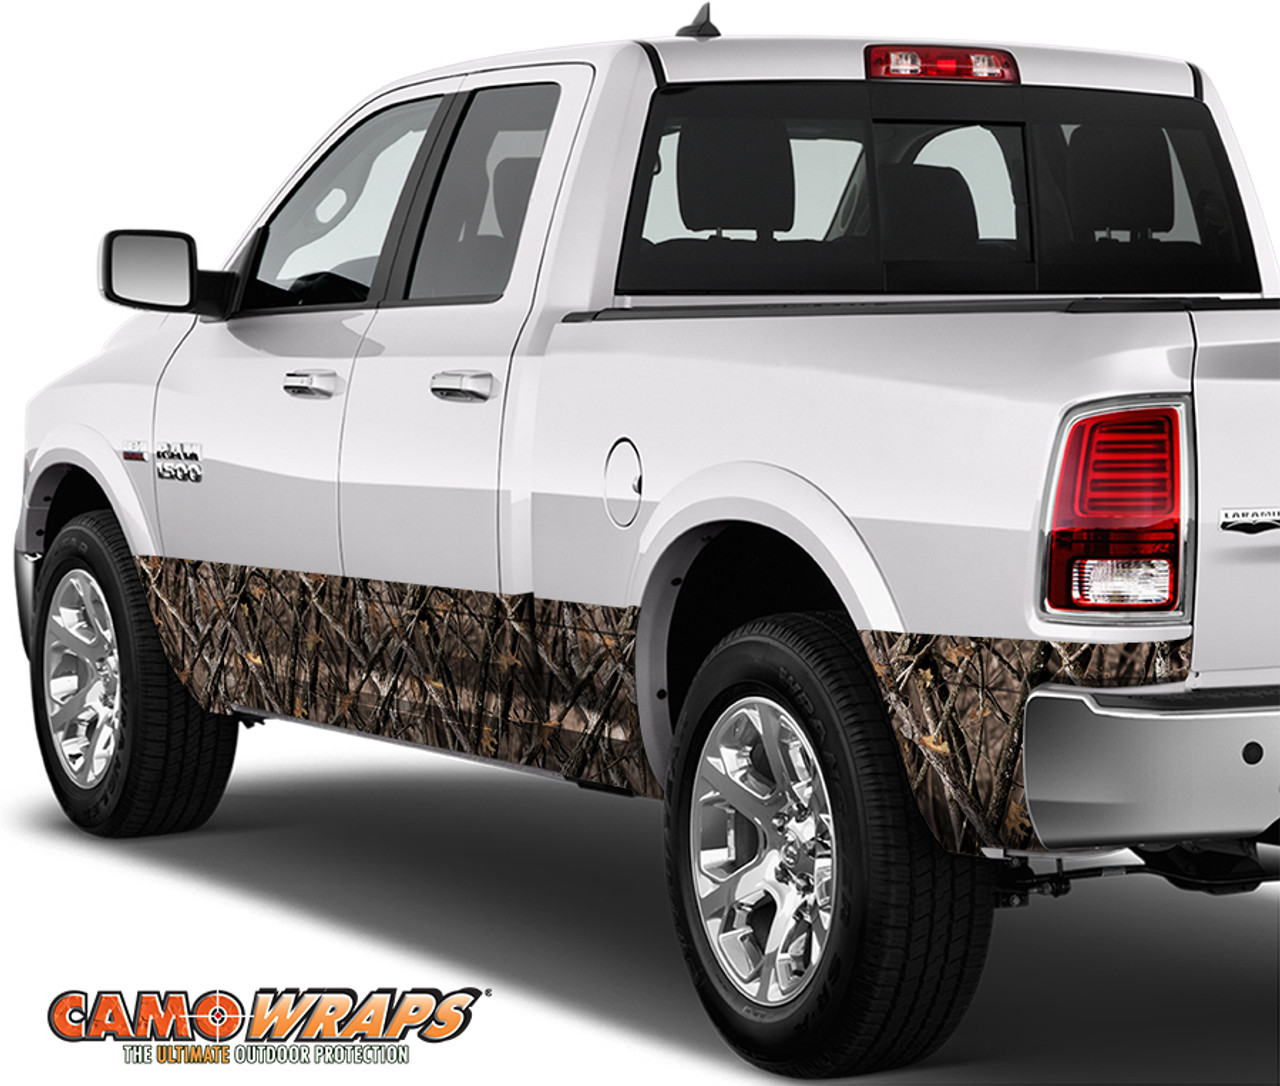 medium resolution of camowraps rocker panel wrap